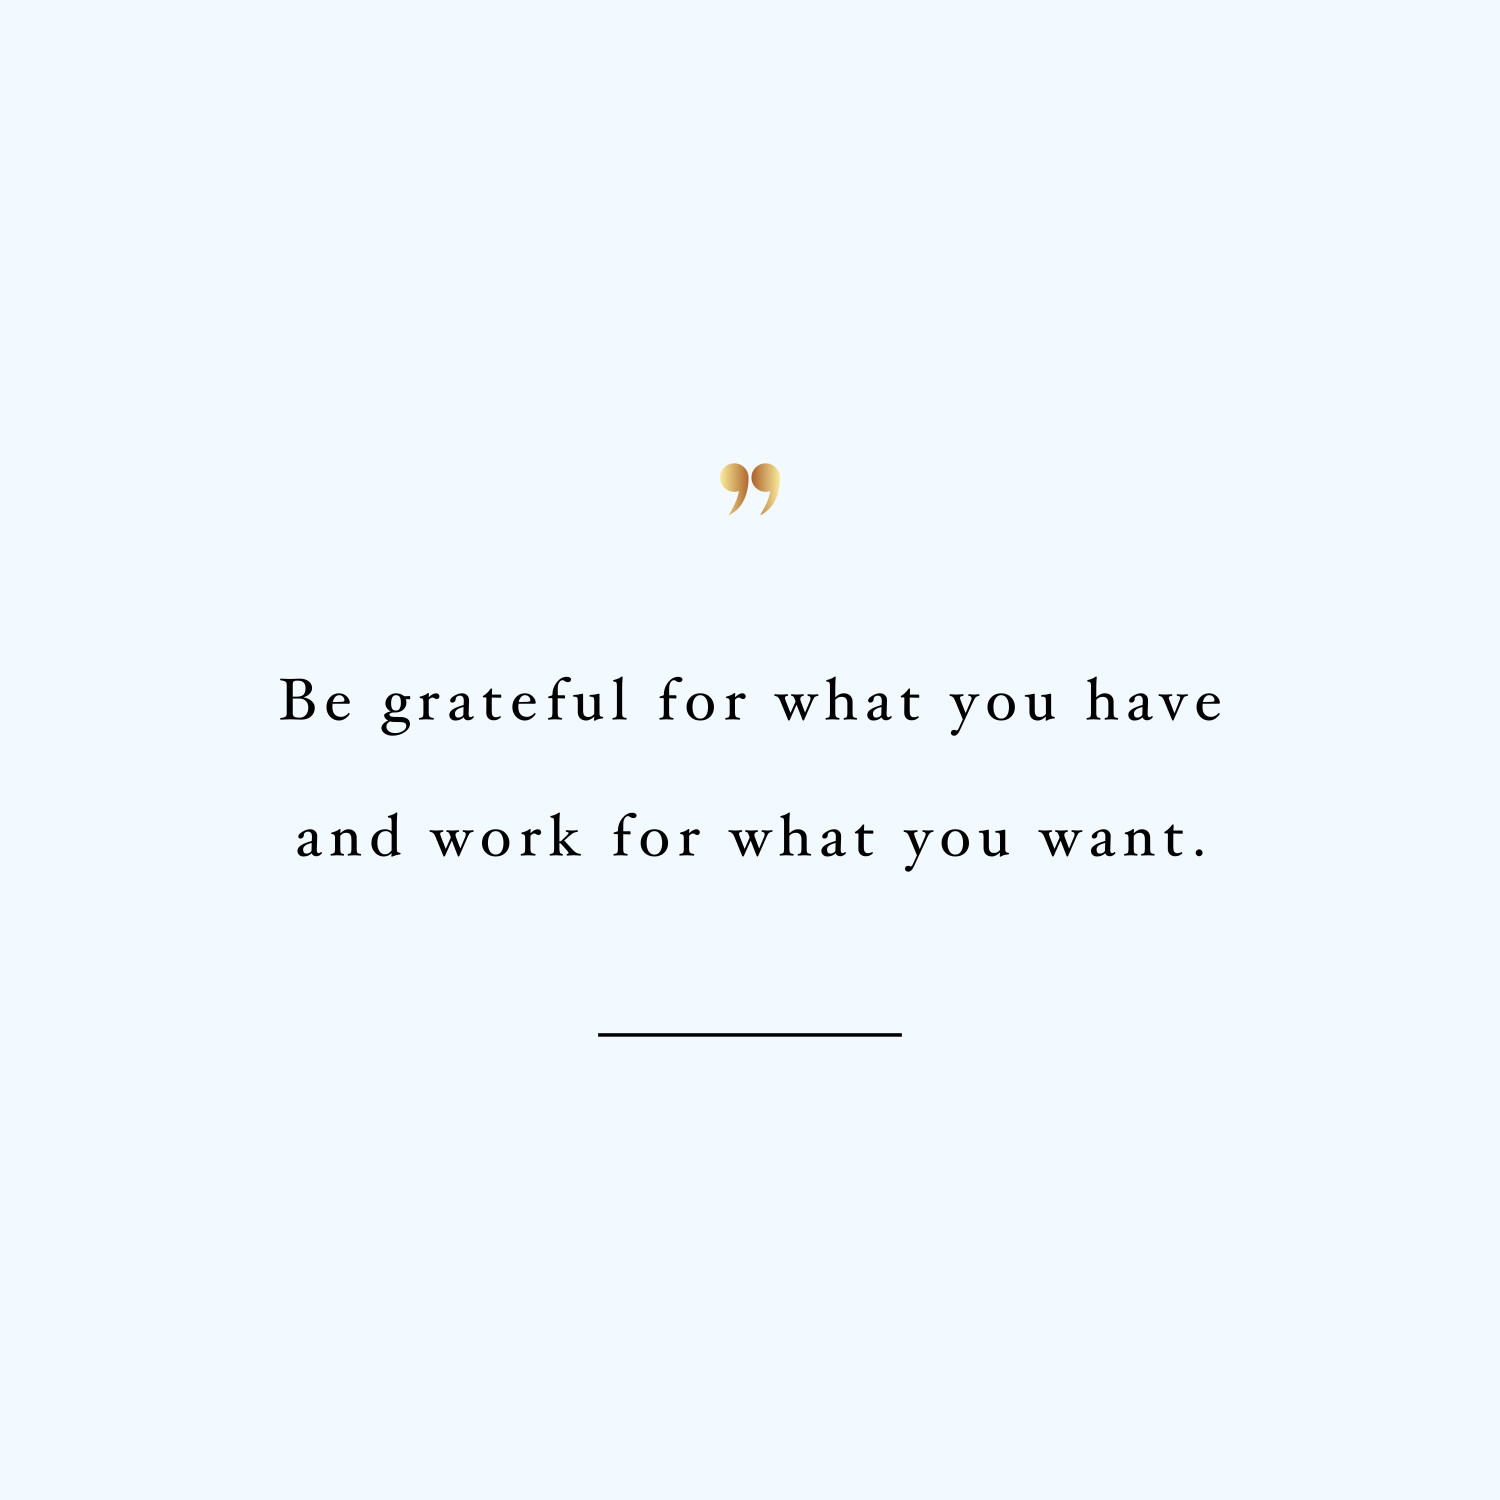 Be grateful! Browse our collection of inspirational exercise quotes and get instant health and fitness motivation. Transform positive thoughts into positive actions and get fit, healthy and happy! https://www.spotebi.com/workout-motivation/be-grateful-health-and-fitness-motivation/